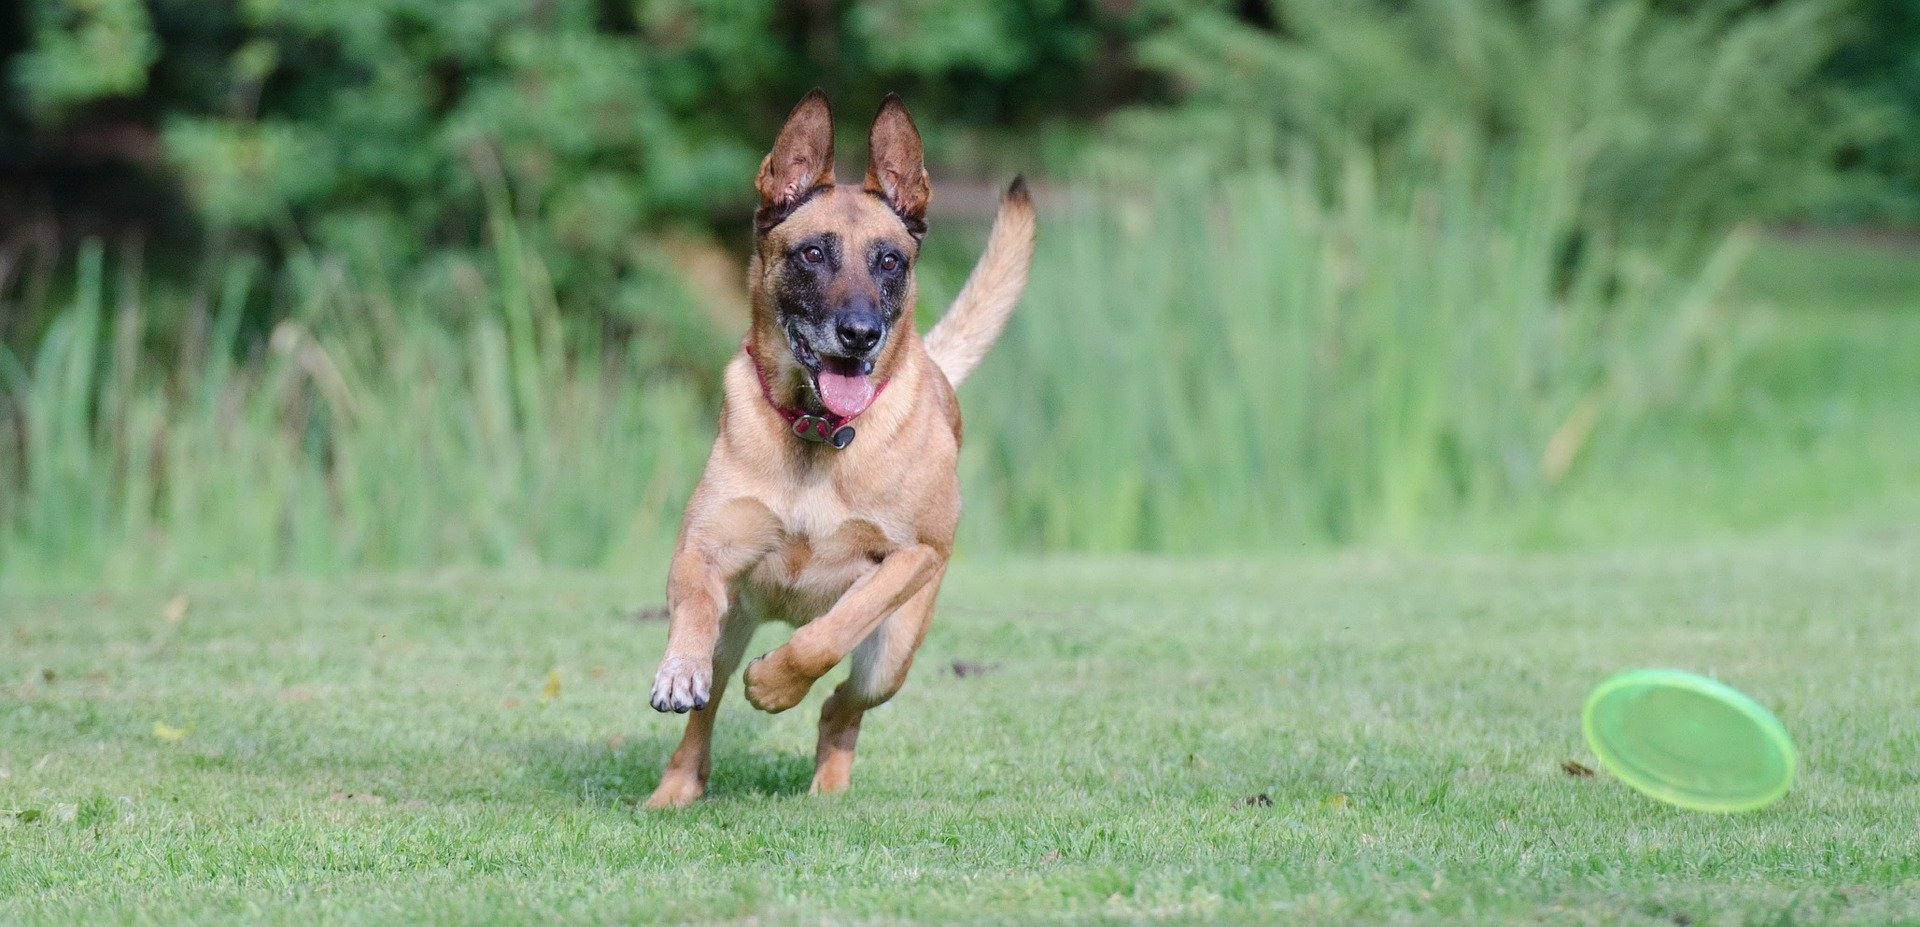 Make your dog happy with a Frisbee game.